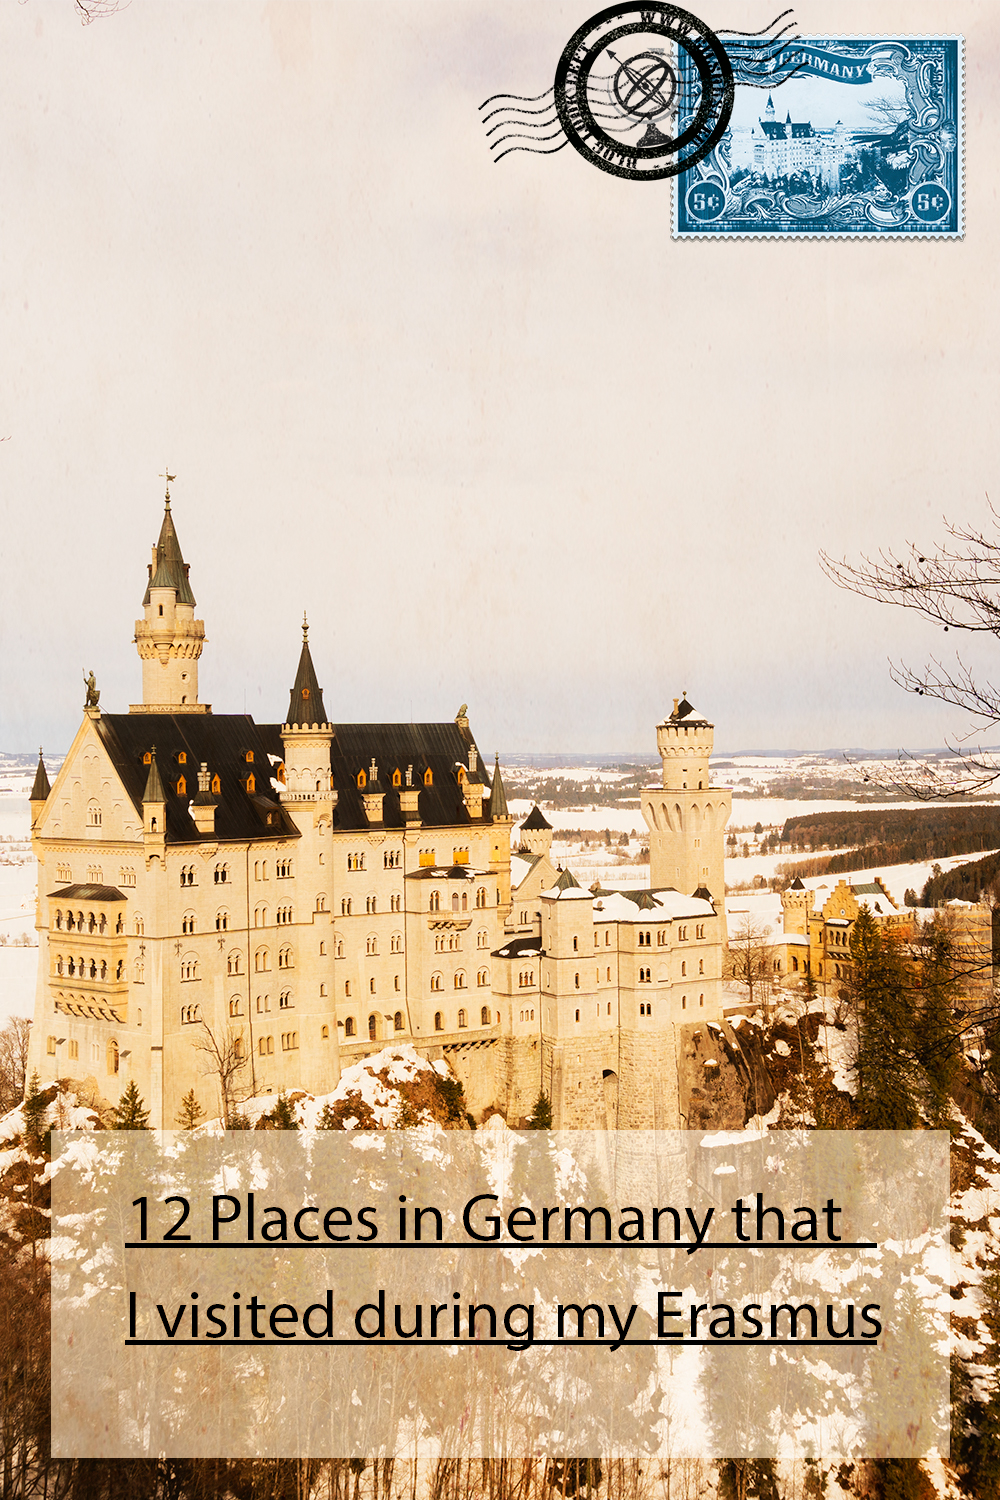 12 Places in Germany that I visited during my Erasmus